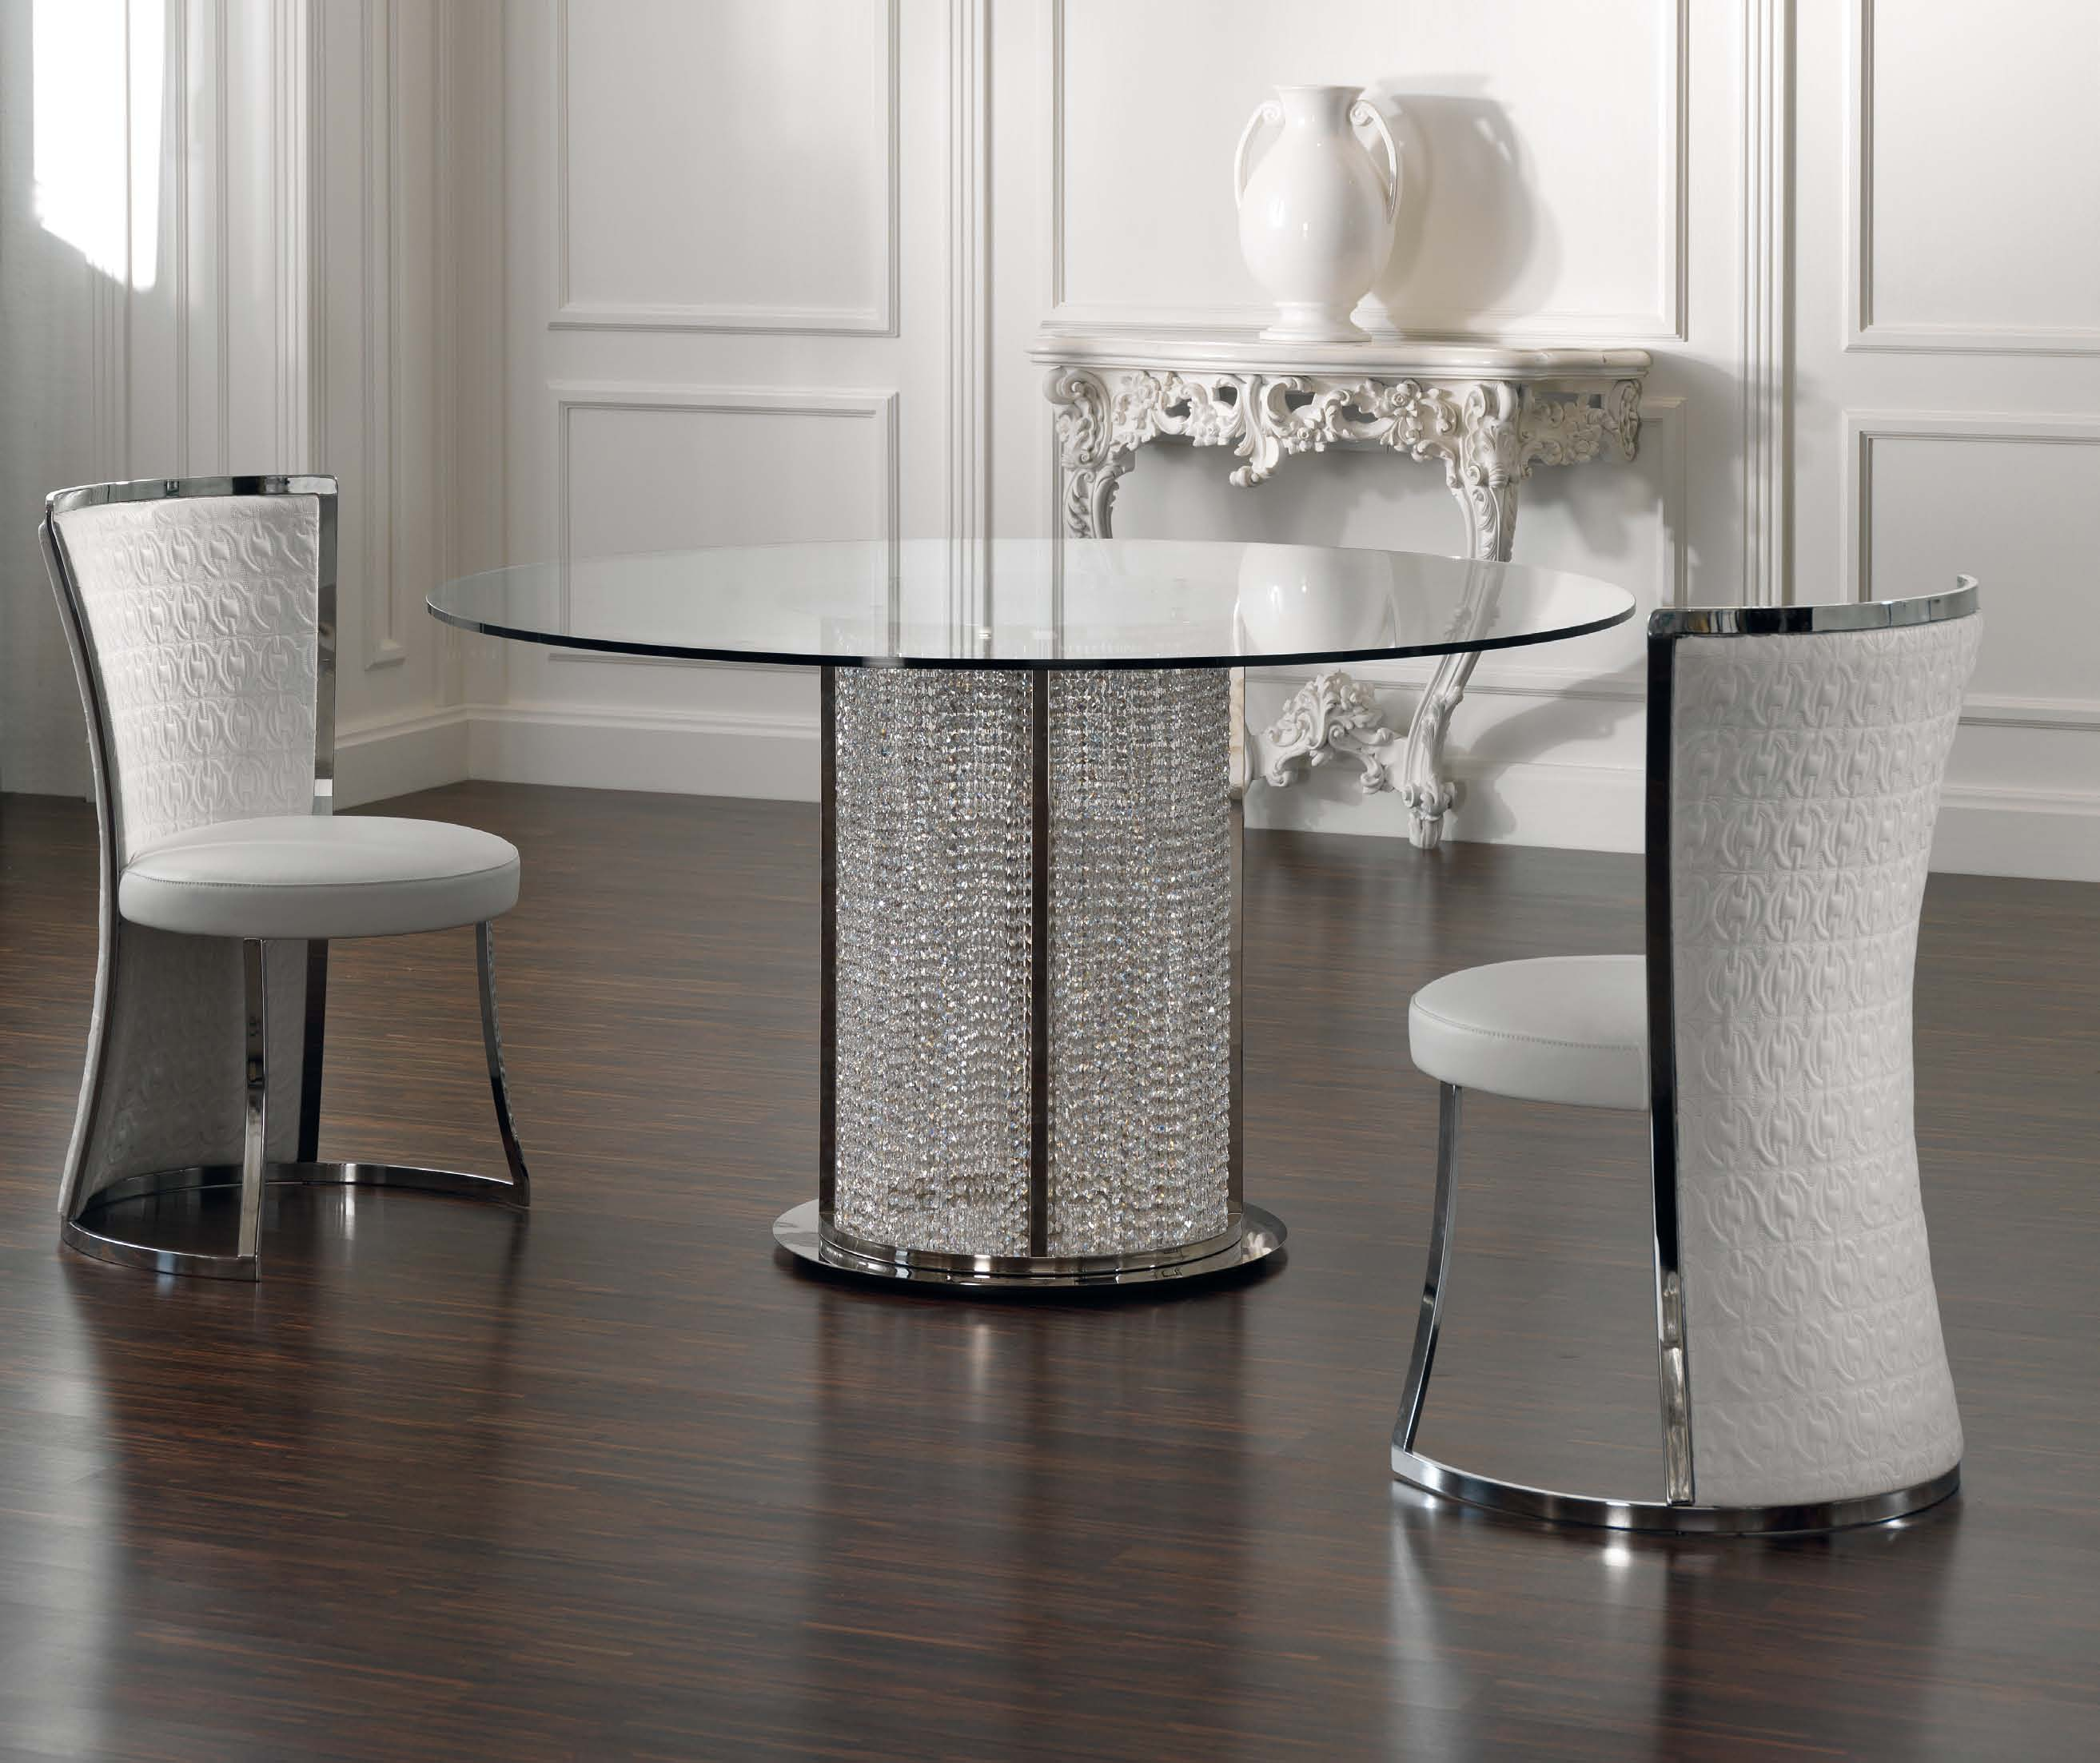 Dining Table Round With Crystal Pendants Eliza, Tosconova